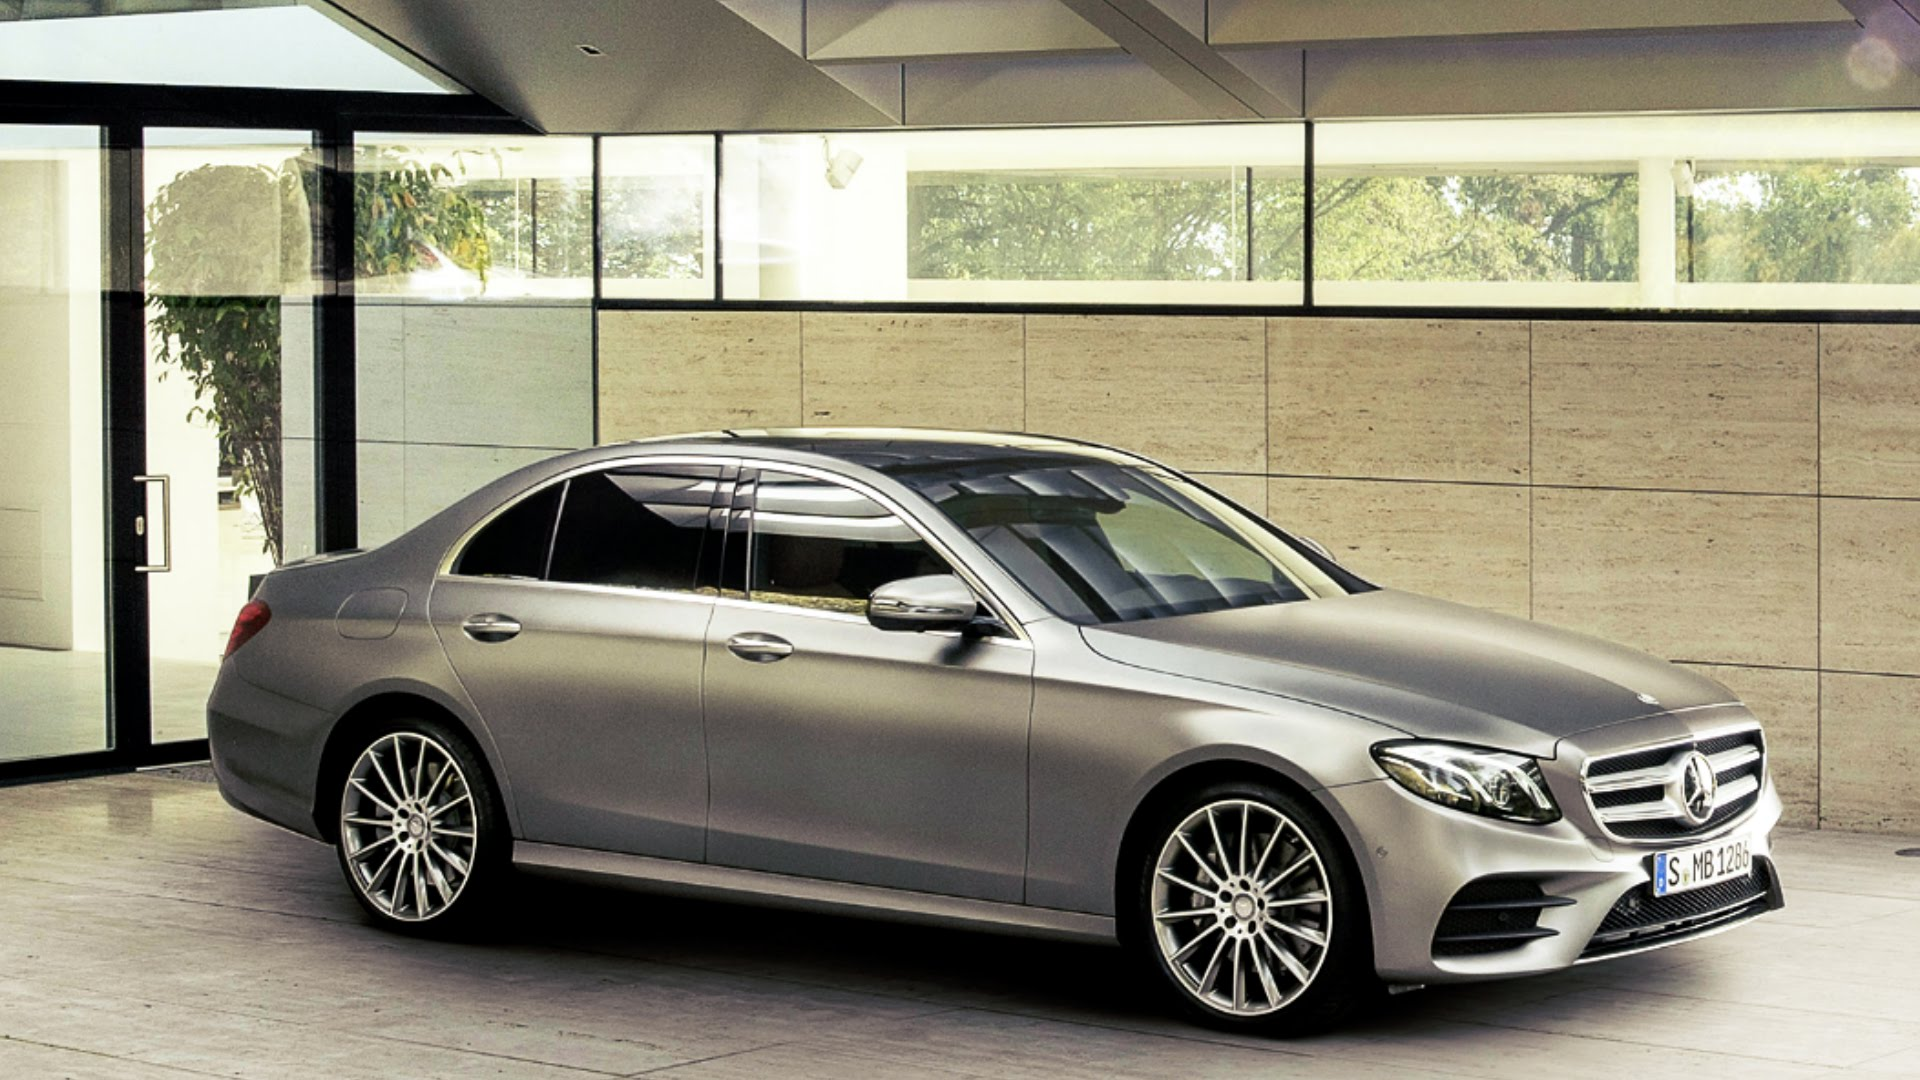 Mercedes-Benz E-klasse AMG V (W213) 2016 - now Sedan #2